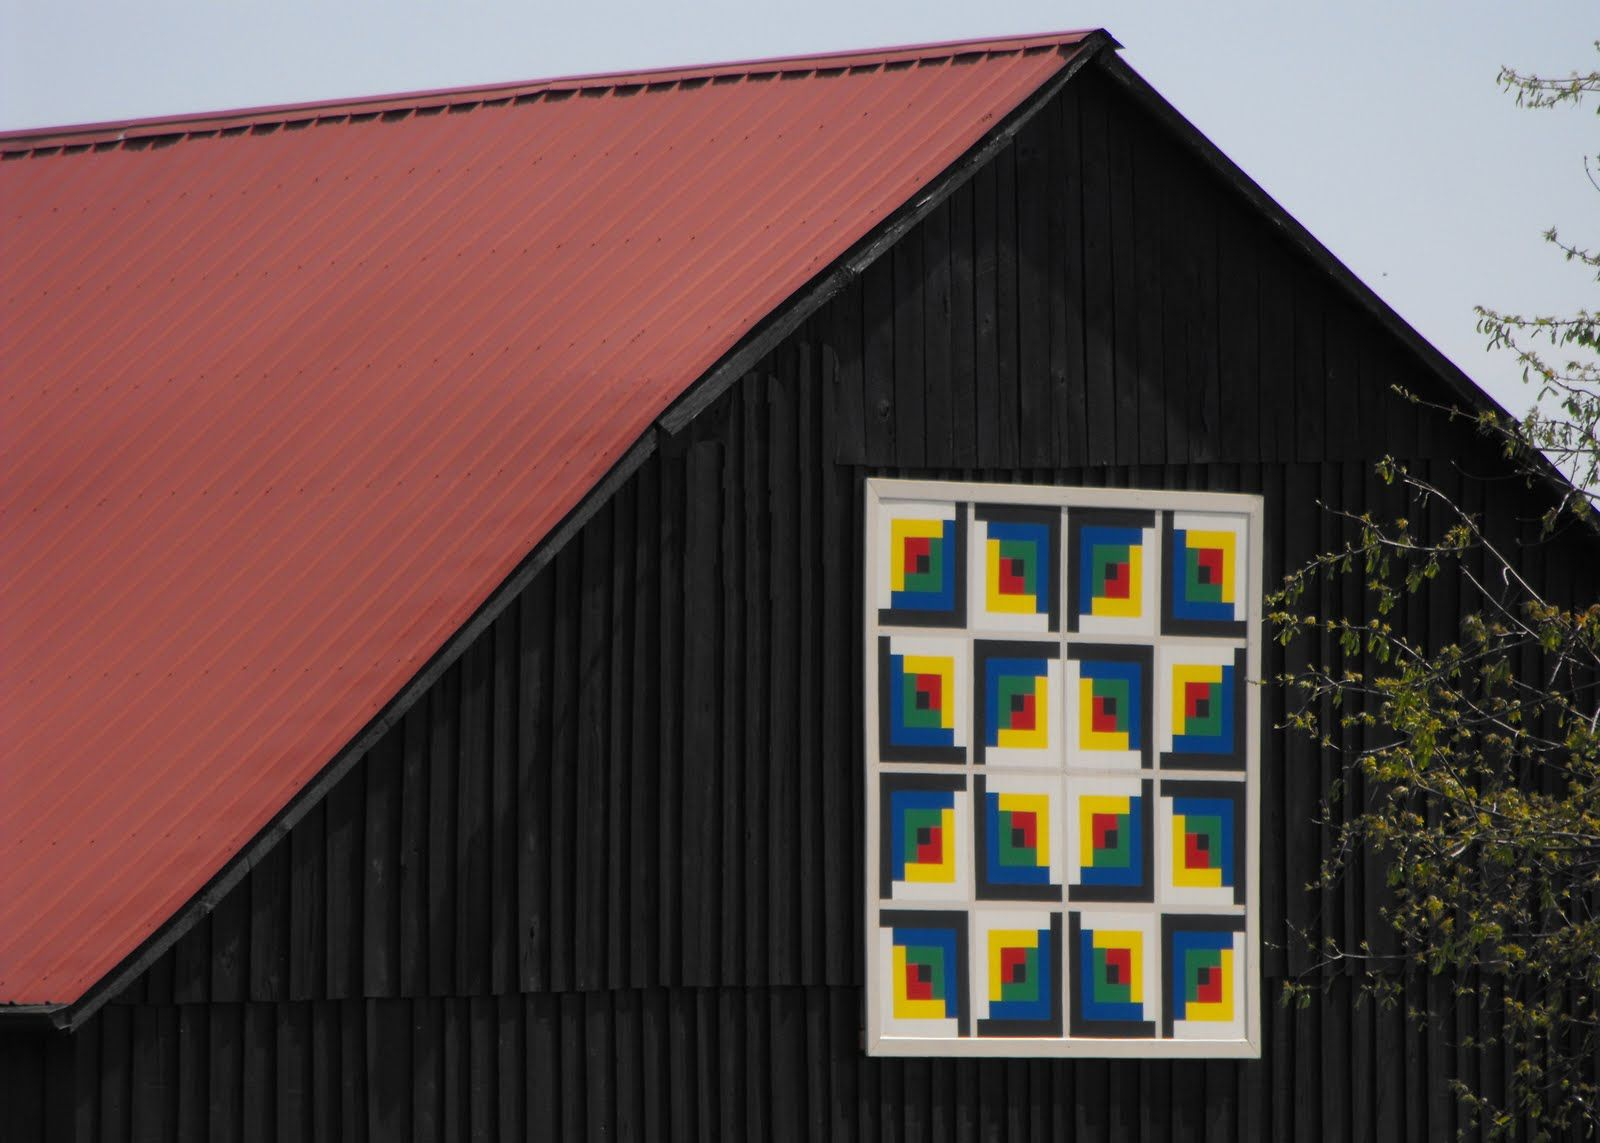 Pin By Anne Johnson On Americana Barns Painted Barn Quilts Barn Quilts Barn Quilt Designs